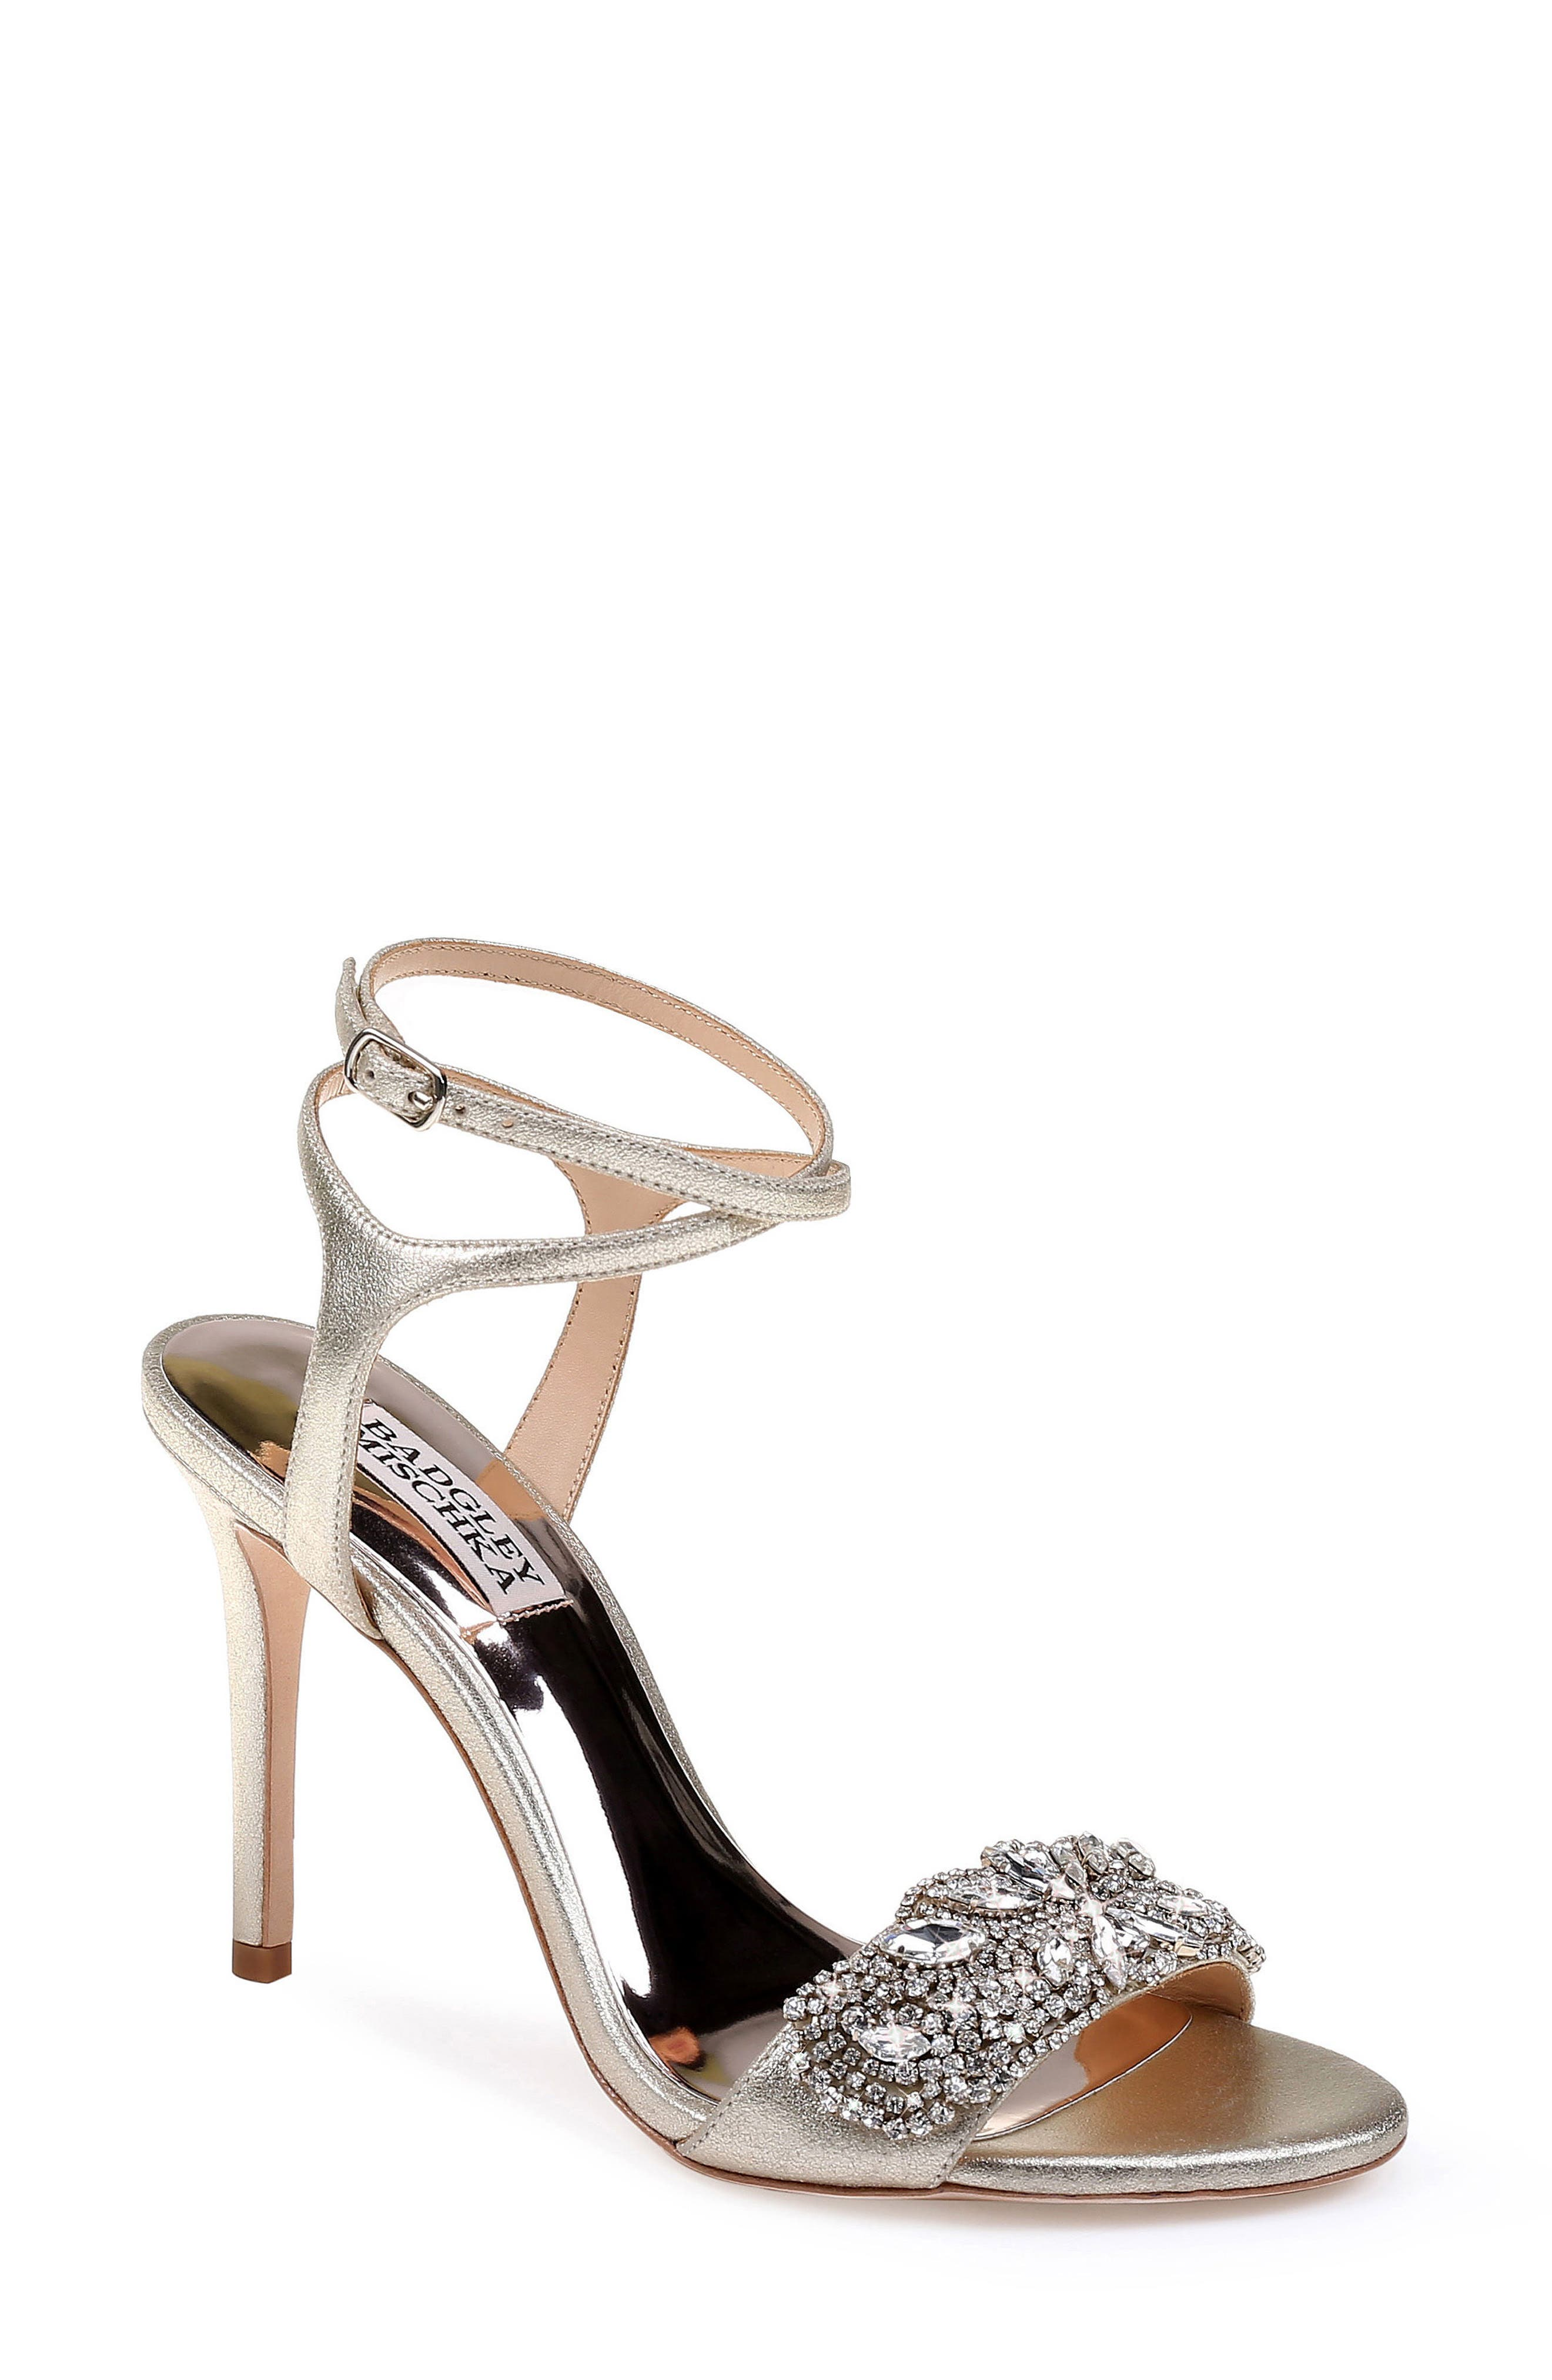 Hailey Embellished Ankle Strap Sandal,                         Main,                         color, 040